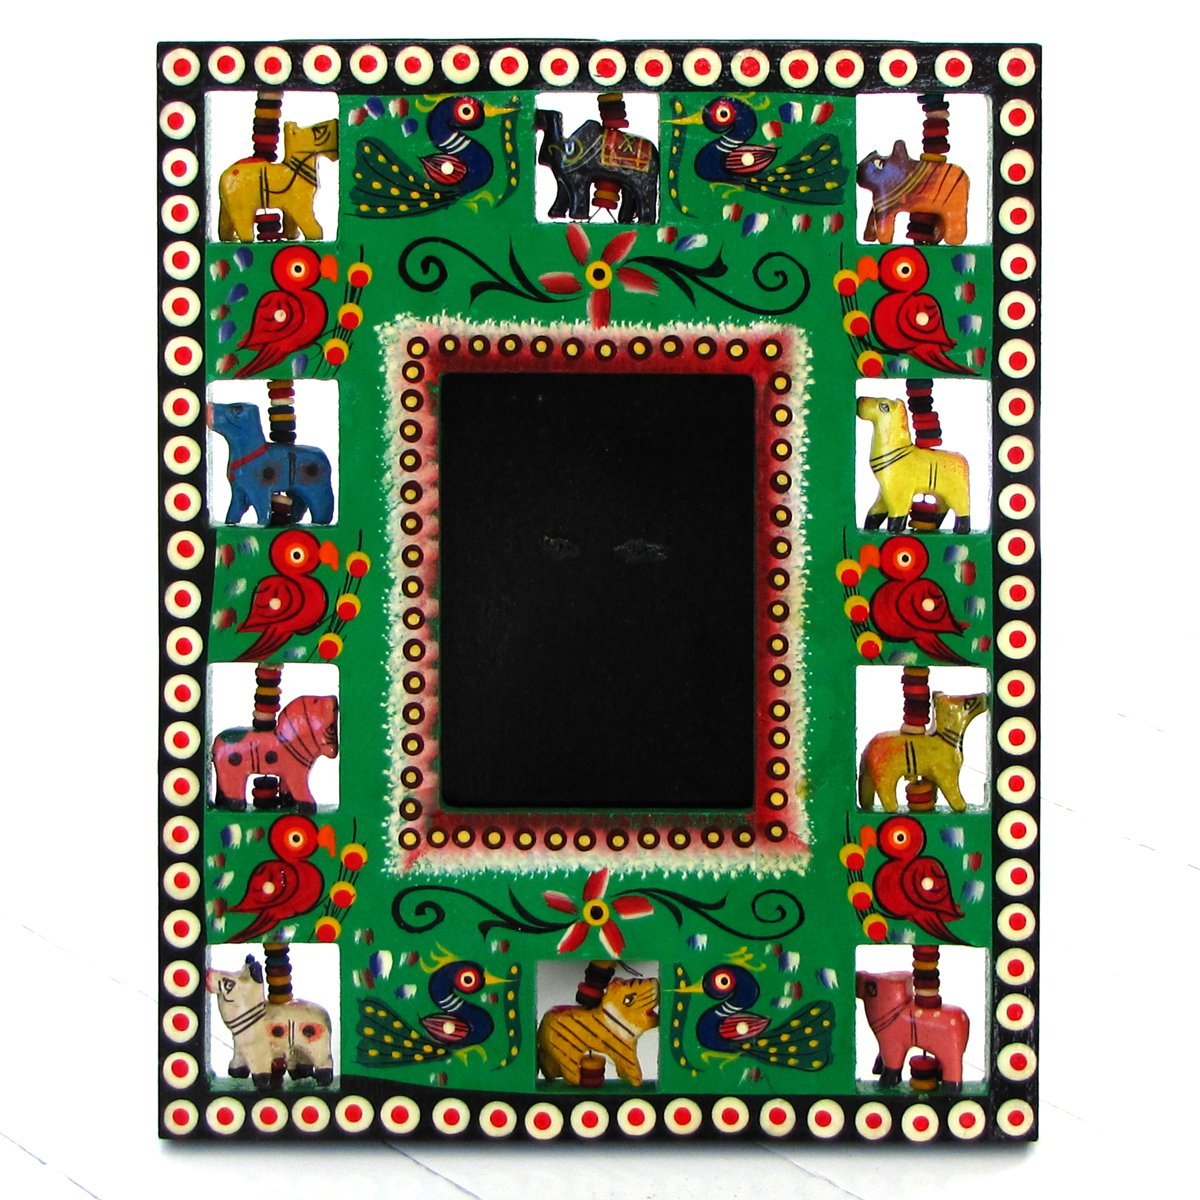 Wood craft handmade picture frame 3.5x4.5 (8x10) Valentine's gifts handmade Indian folk arts